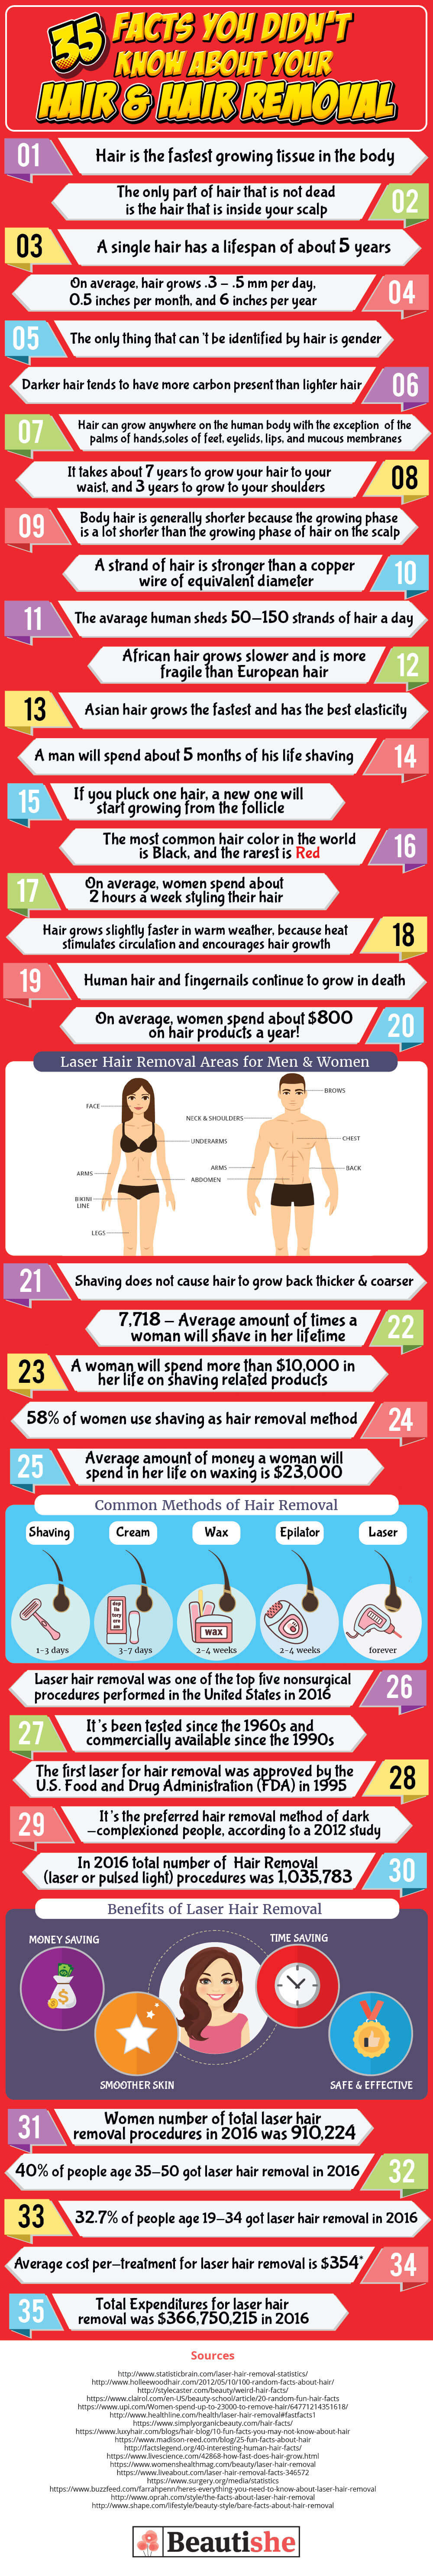 35 Facts about Hair and Hair Removal